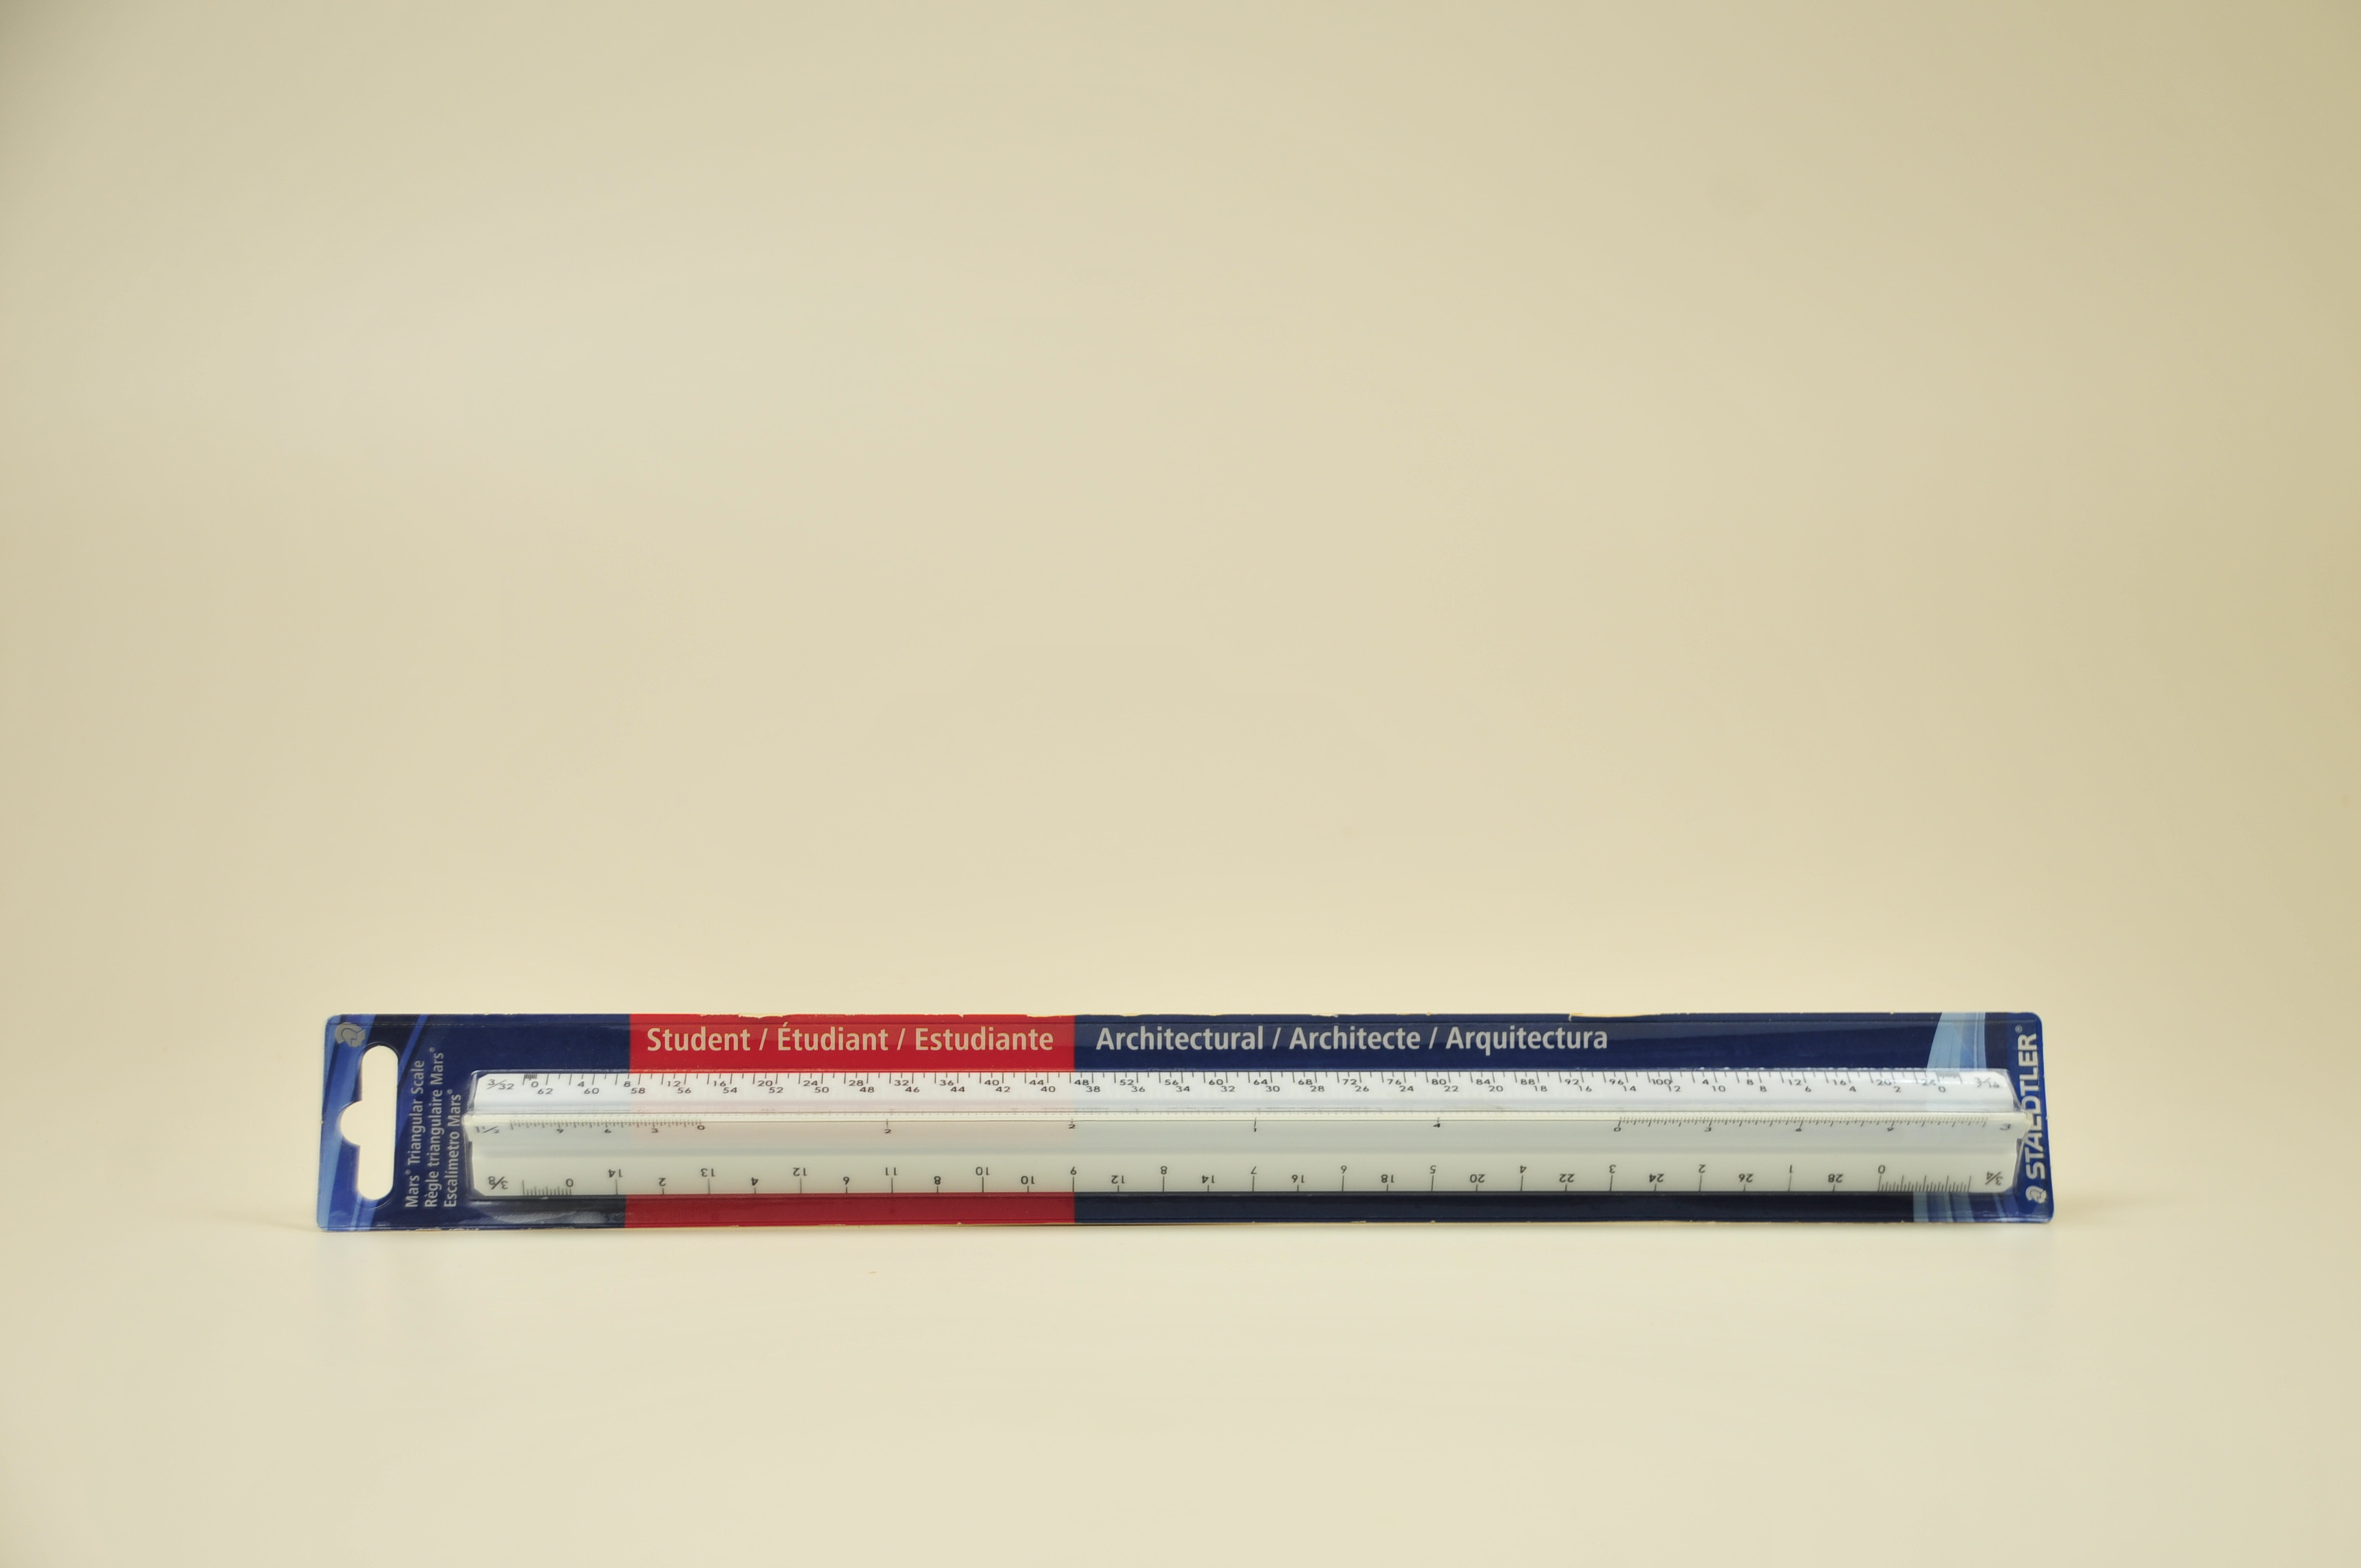 How To Remove Super Glue From Laminate Countertop Staedtler Architects Triangular Scale Ruler Laminate